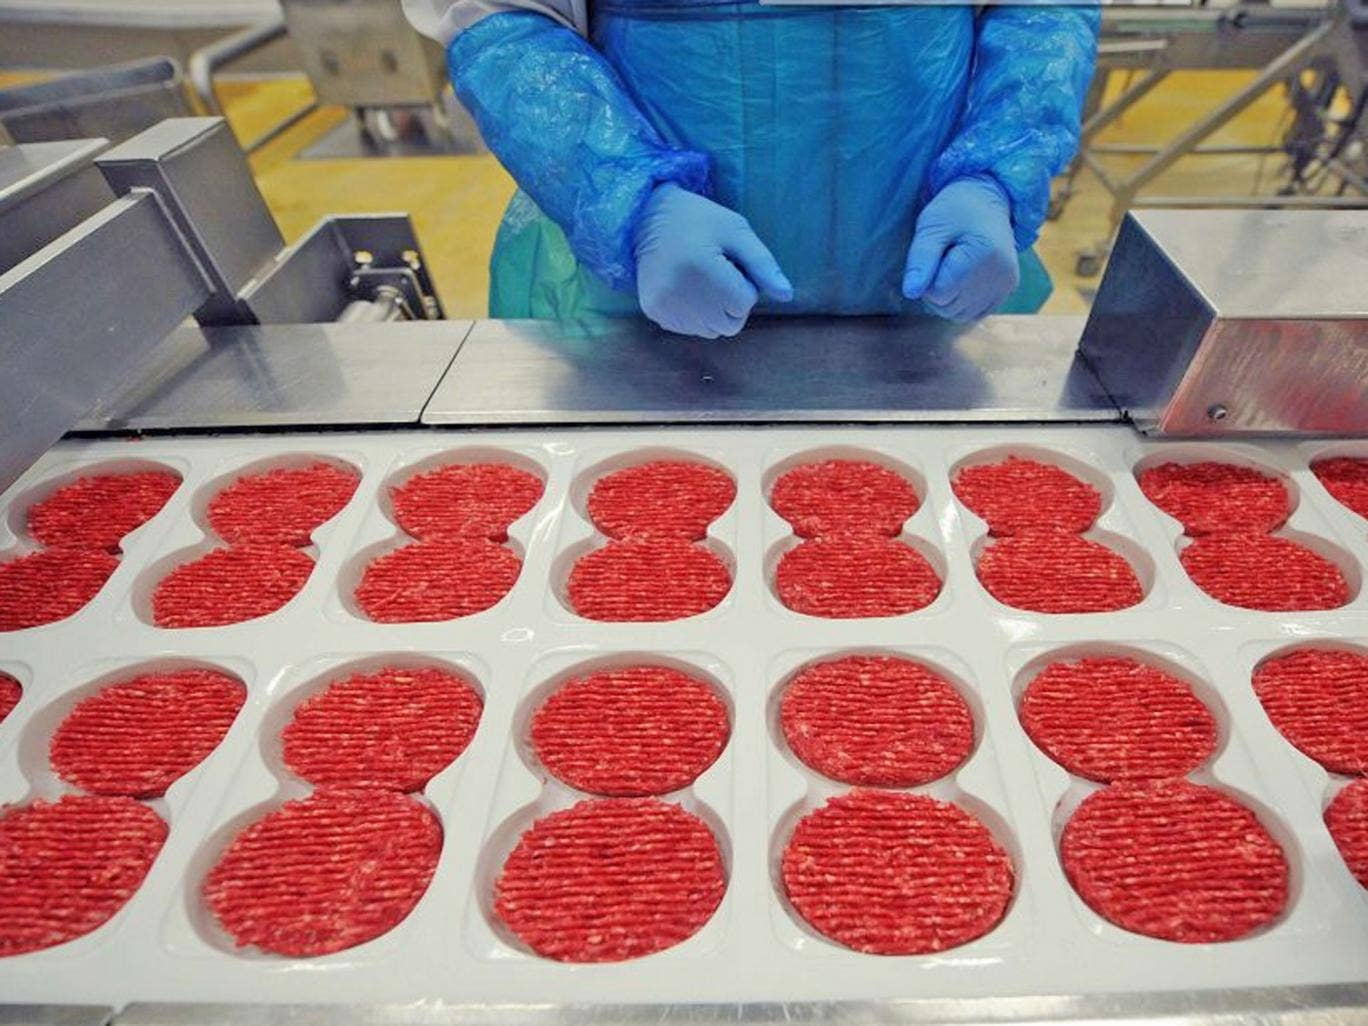 French meat food industrial factory, working on the production chain of beef steaks. A Europe-wide food fraud scandal over horsemeat sold as beef deepened as Romania announced an inquiry into the origin of the meat and suspicions of criminal activity moun